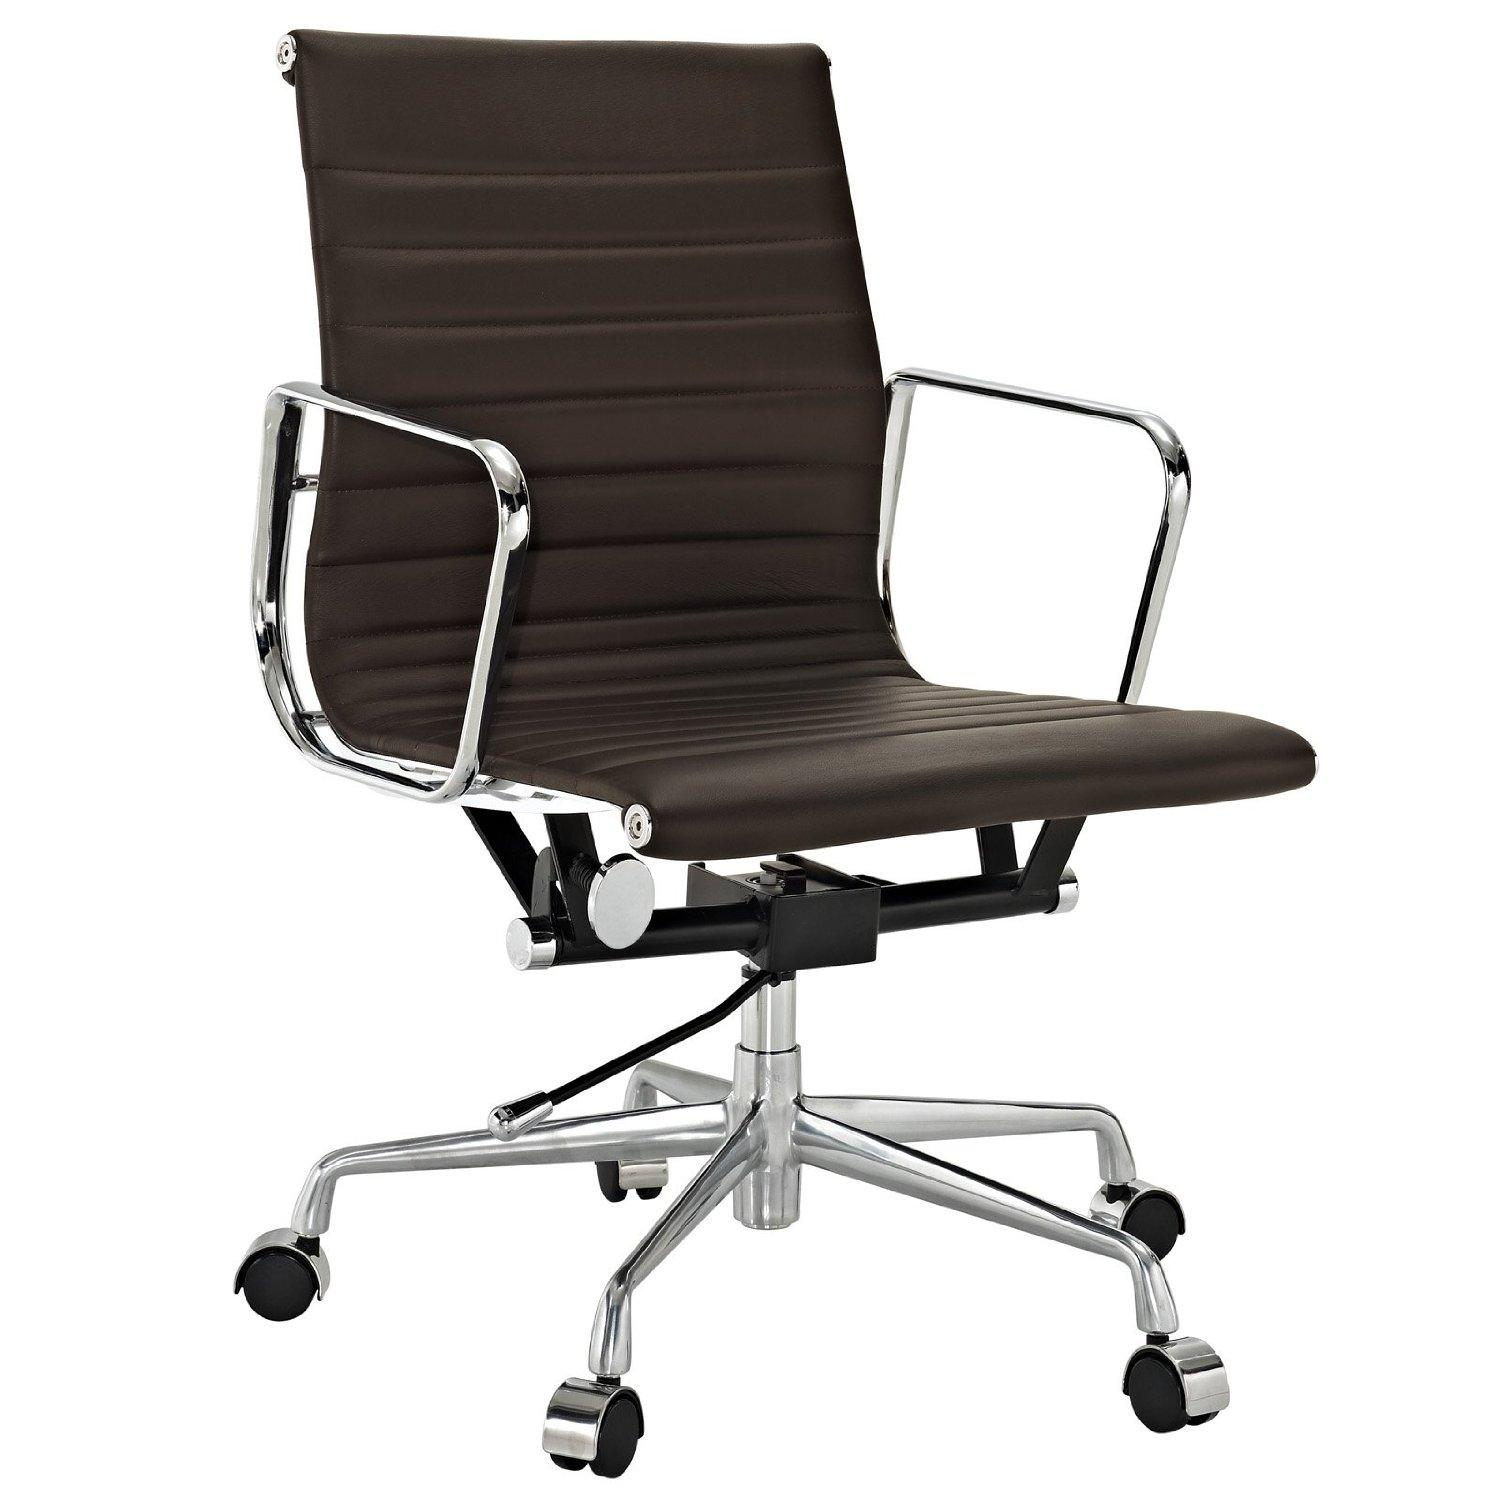 Amazoncom  LexMod Ribbed Mid Back Office Chair in Brown Genuine Leather  Desk Chairs